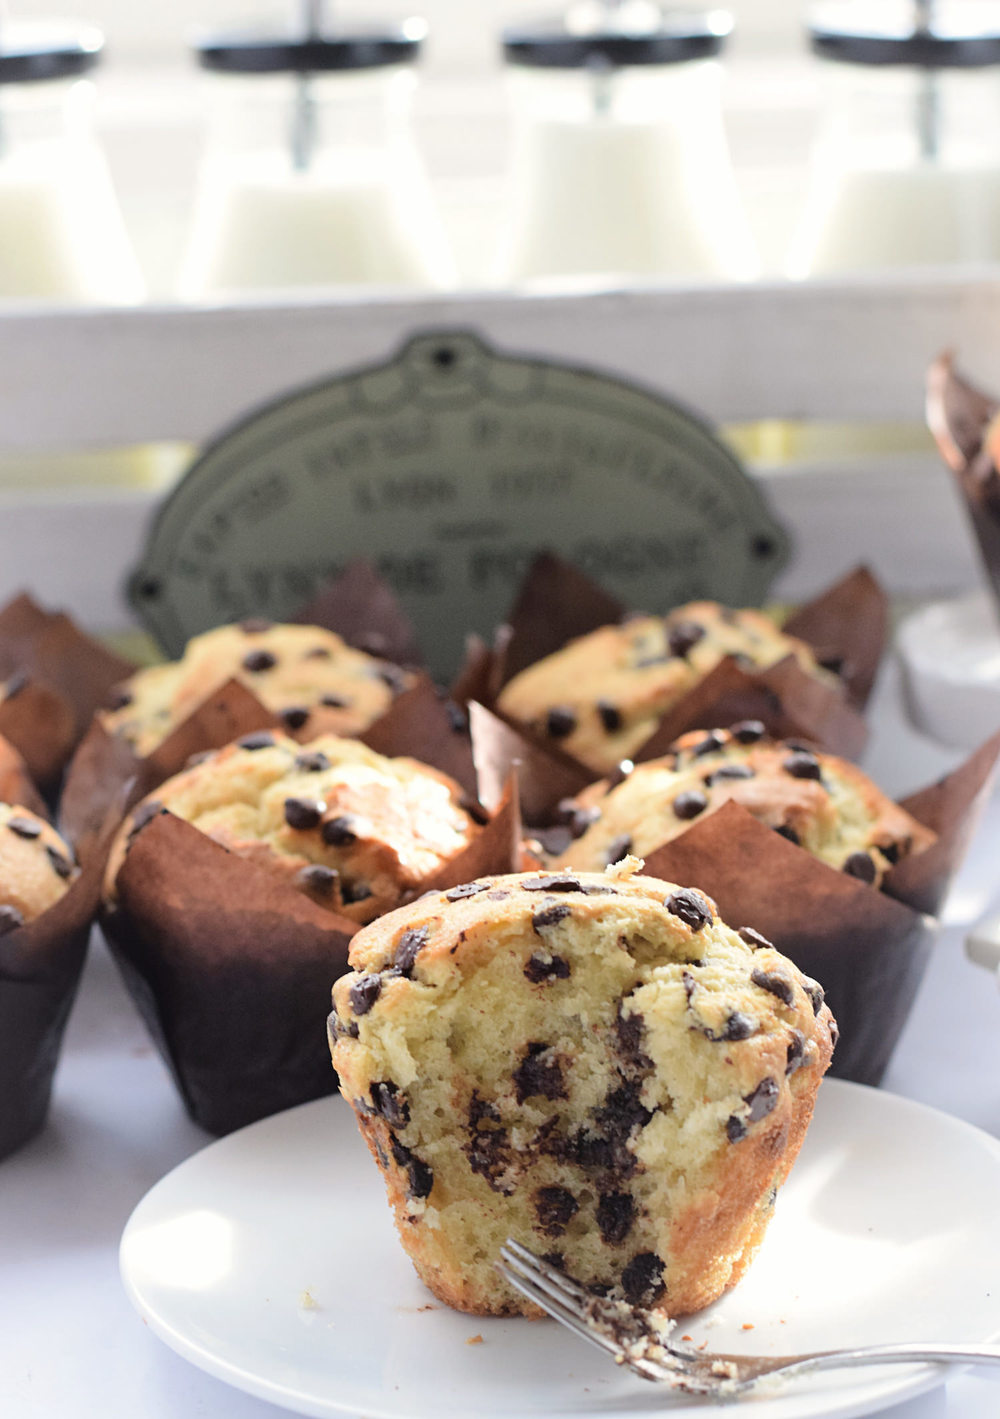 Amazing Chocolate Chip Muffins: incredibly tender, fluffy, soft muffins packed with chocolate chips. Best I've ever had! Video included! | trufflesandtrends.com